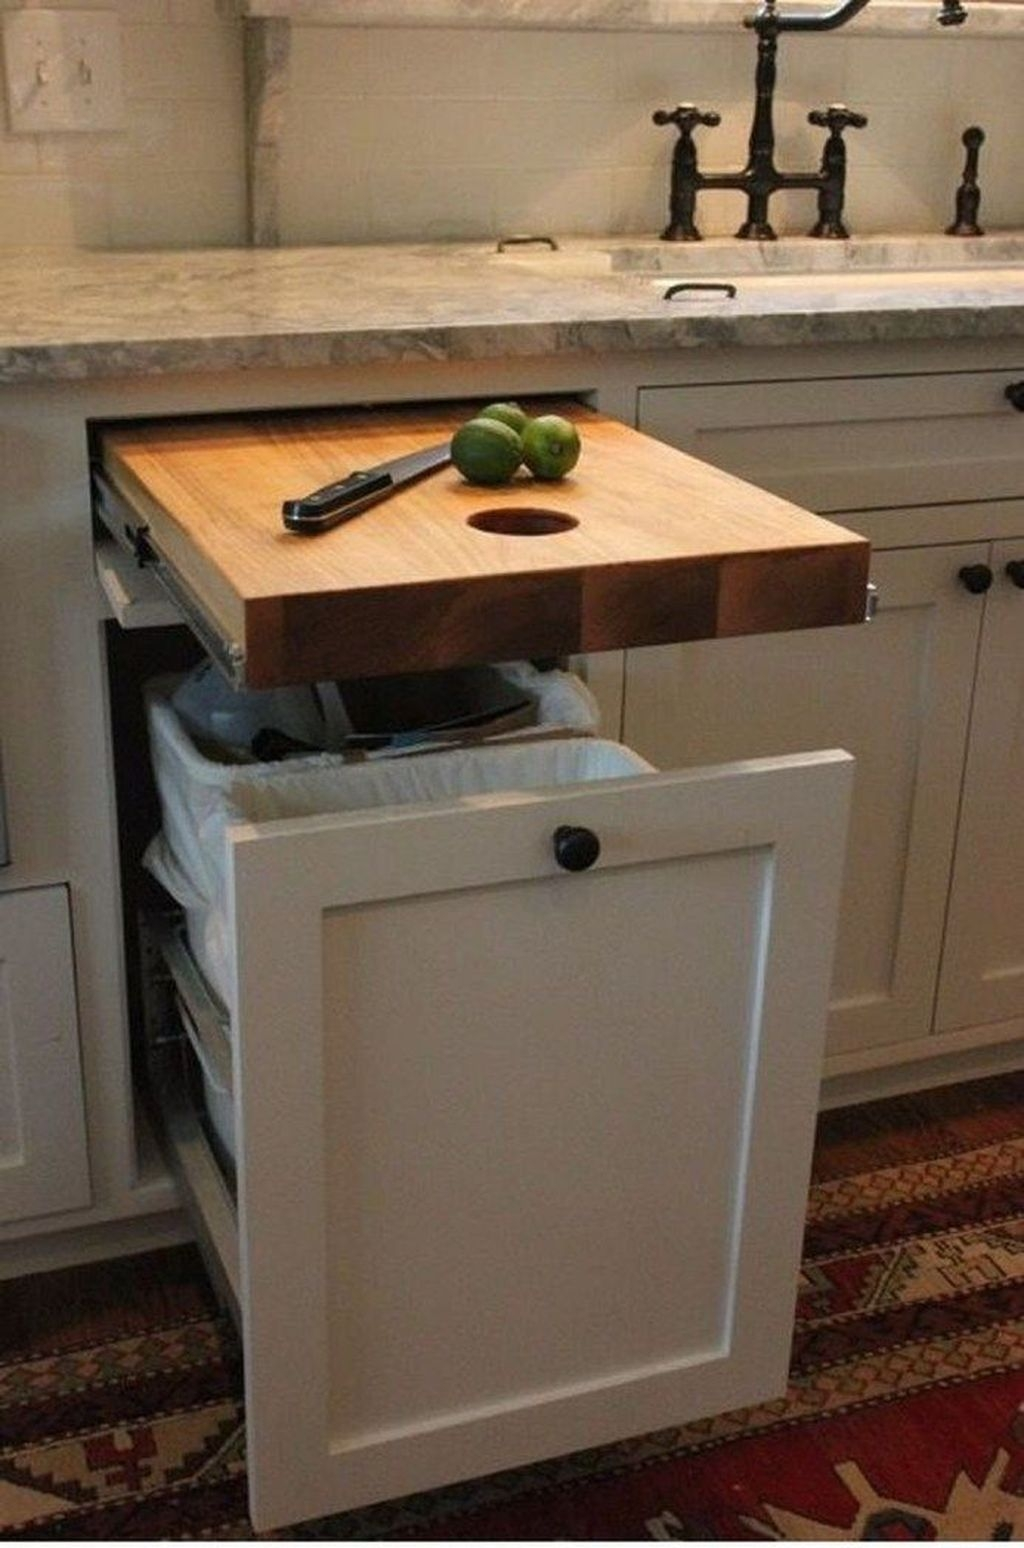 Inspiring Kitchen Storage Design Ideas 02